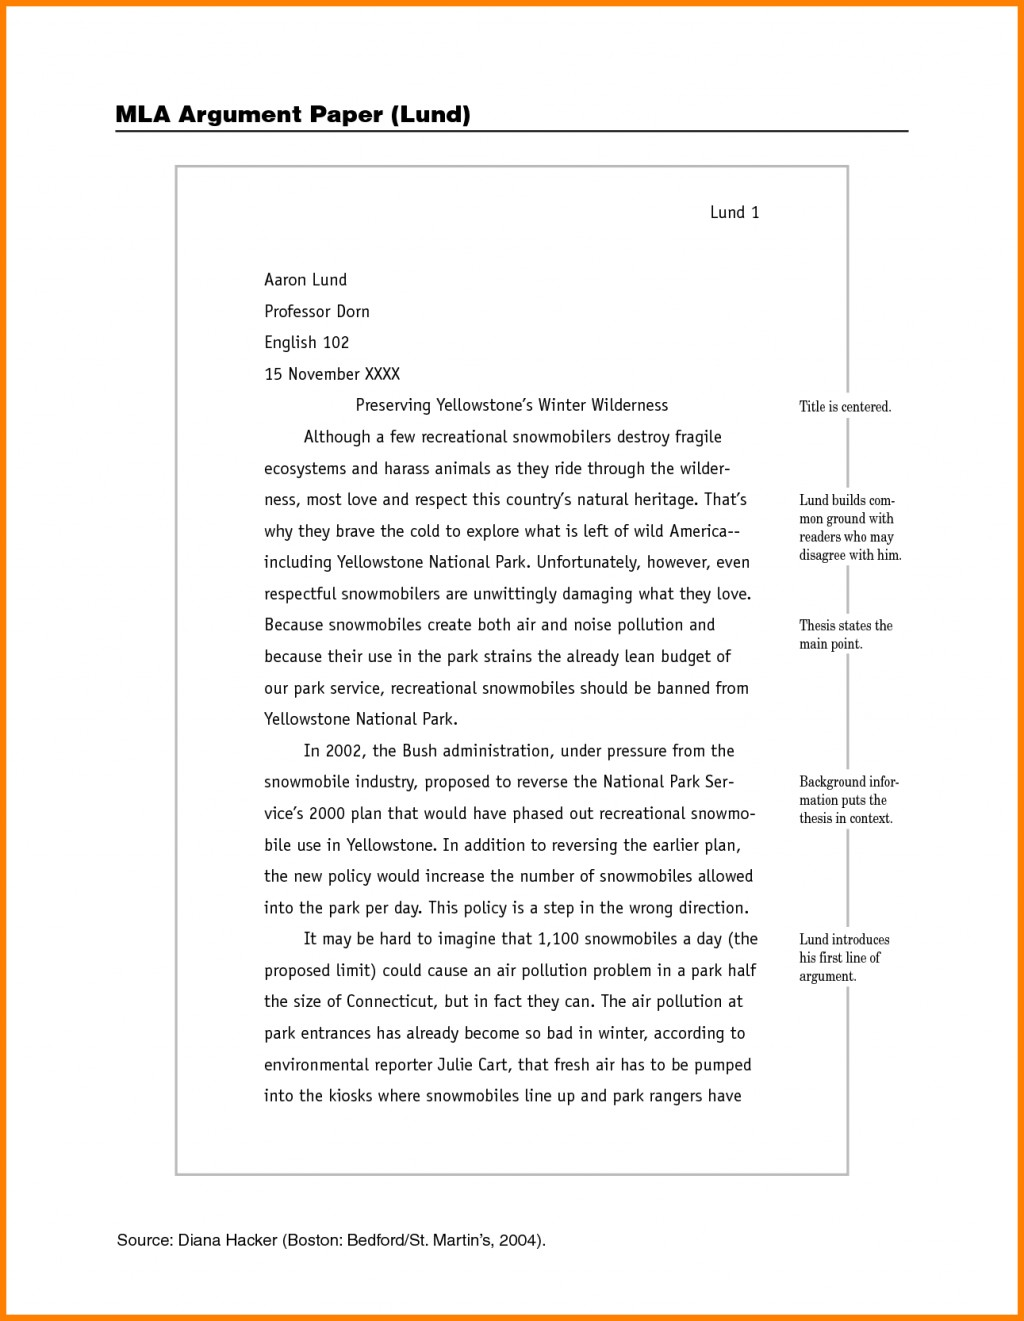 003 How To Write Research Paper Sample Mla Unusual Papers Outline With Cover Page Daly Large